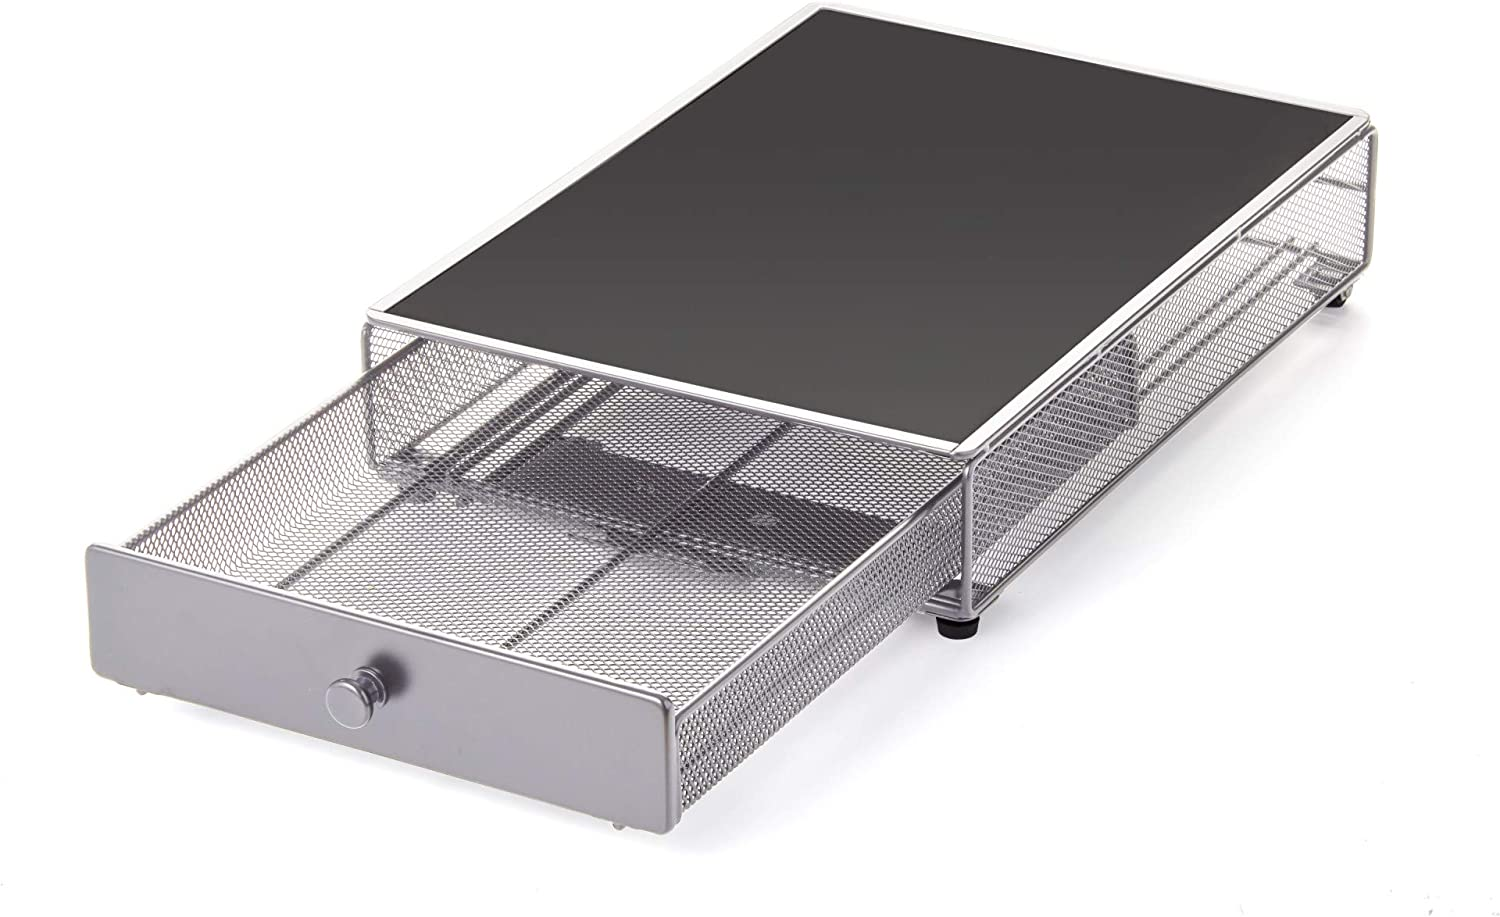 Nifty Appliance Rolling Drawer - Silver, Office or Home Kitchen Counter Organizer, Non-Slip Mat Top for Coffee Maker, Stand Mixer, Blender, Toaster